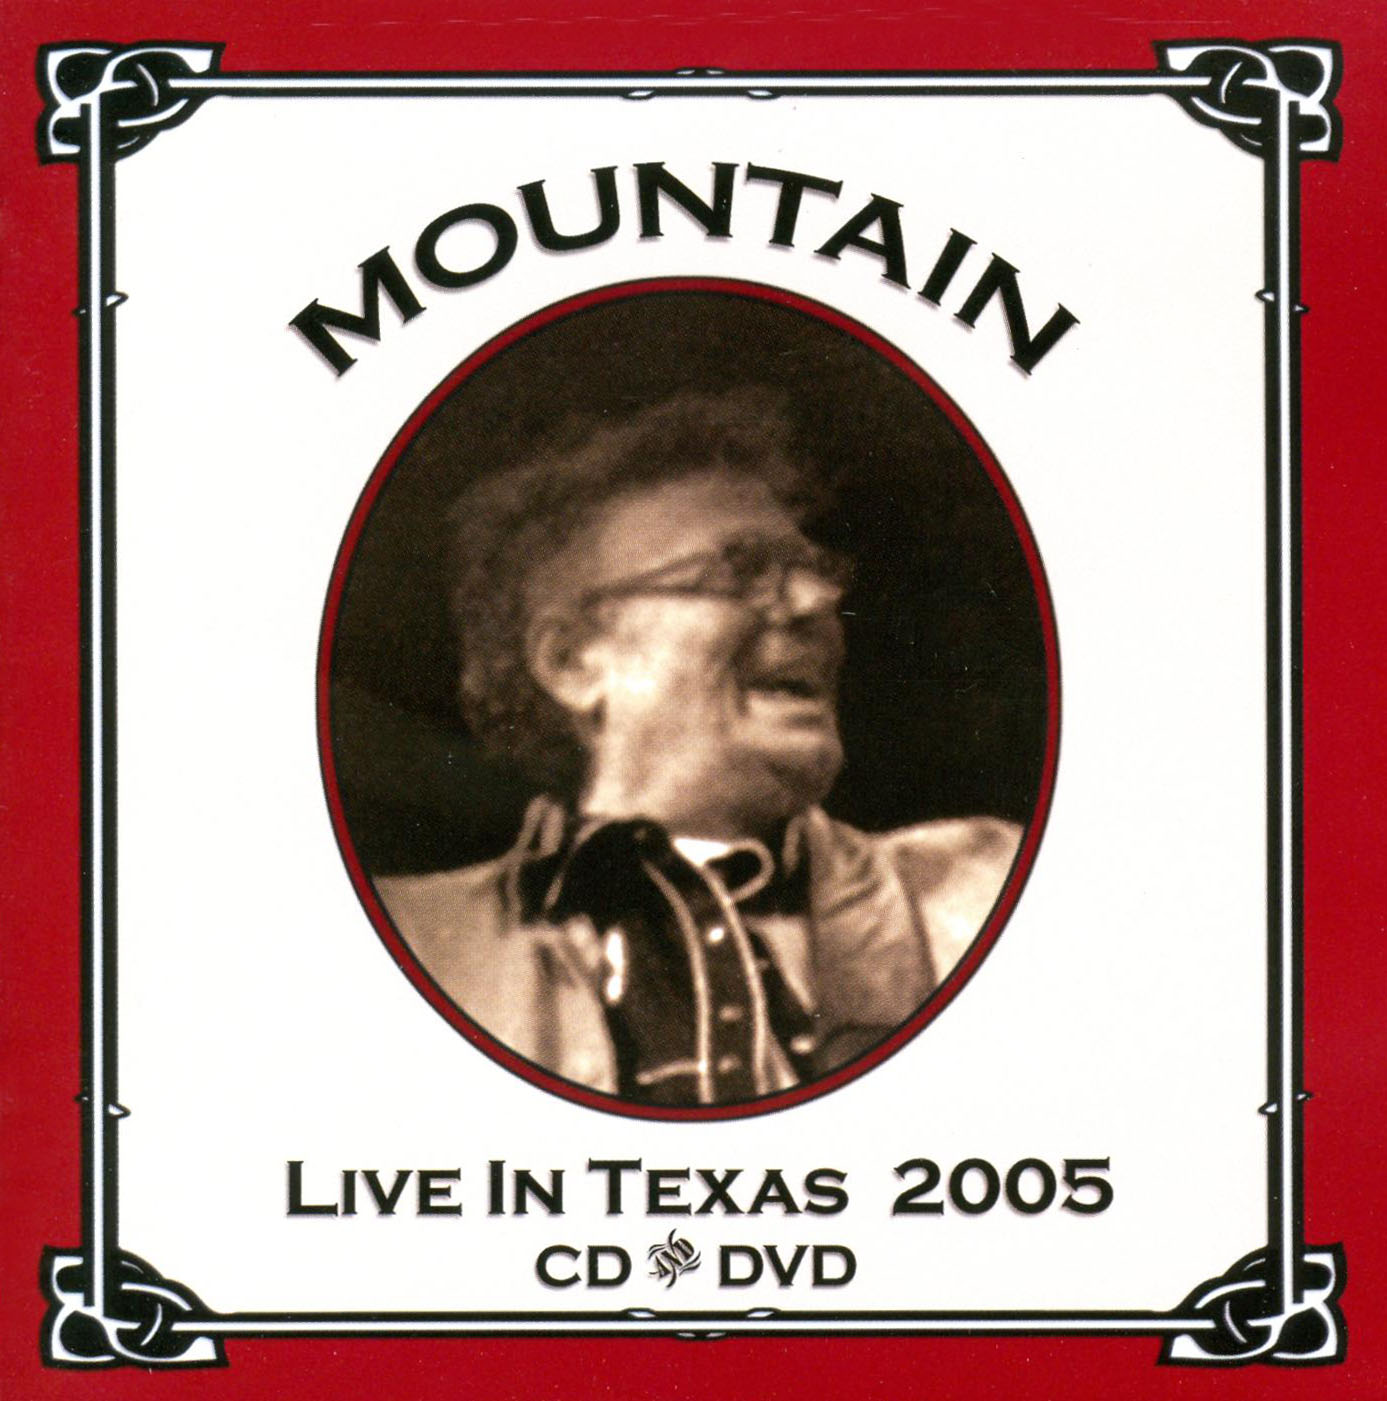 Mountain: Live in Texas 2005